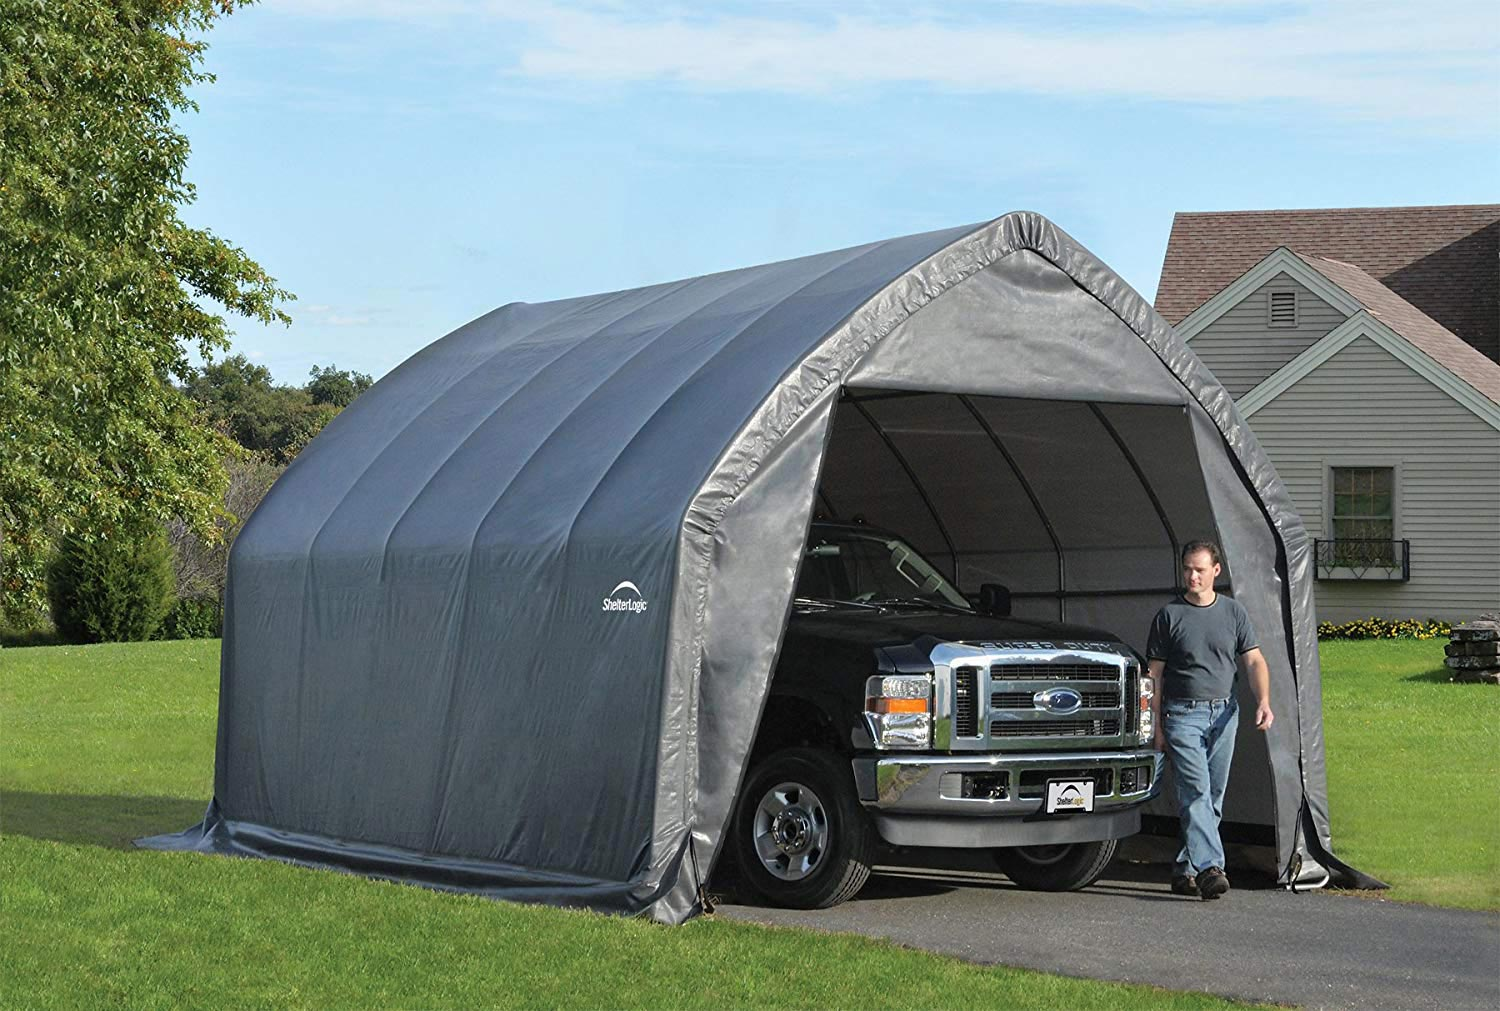 Temporary shed in driveway with truck inside.